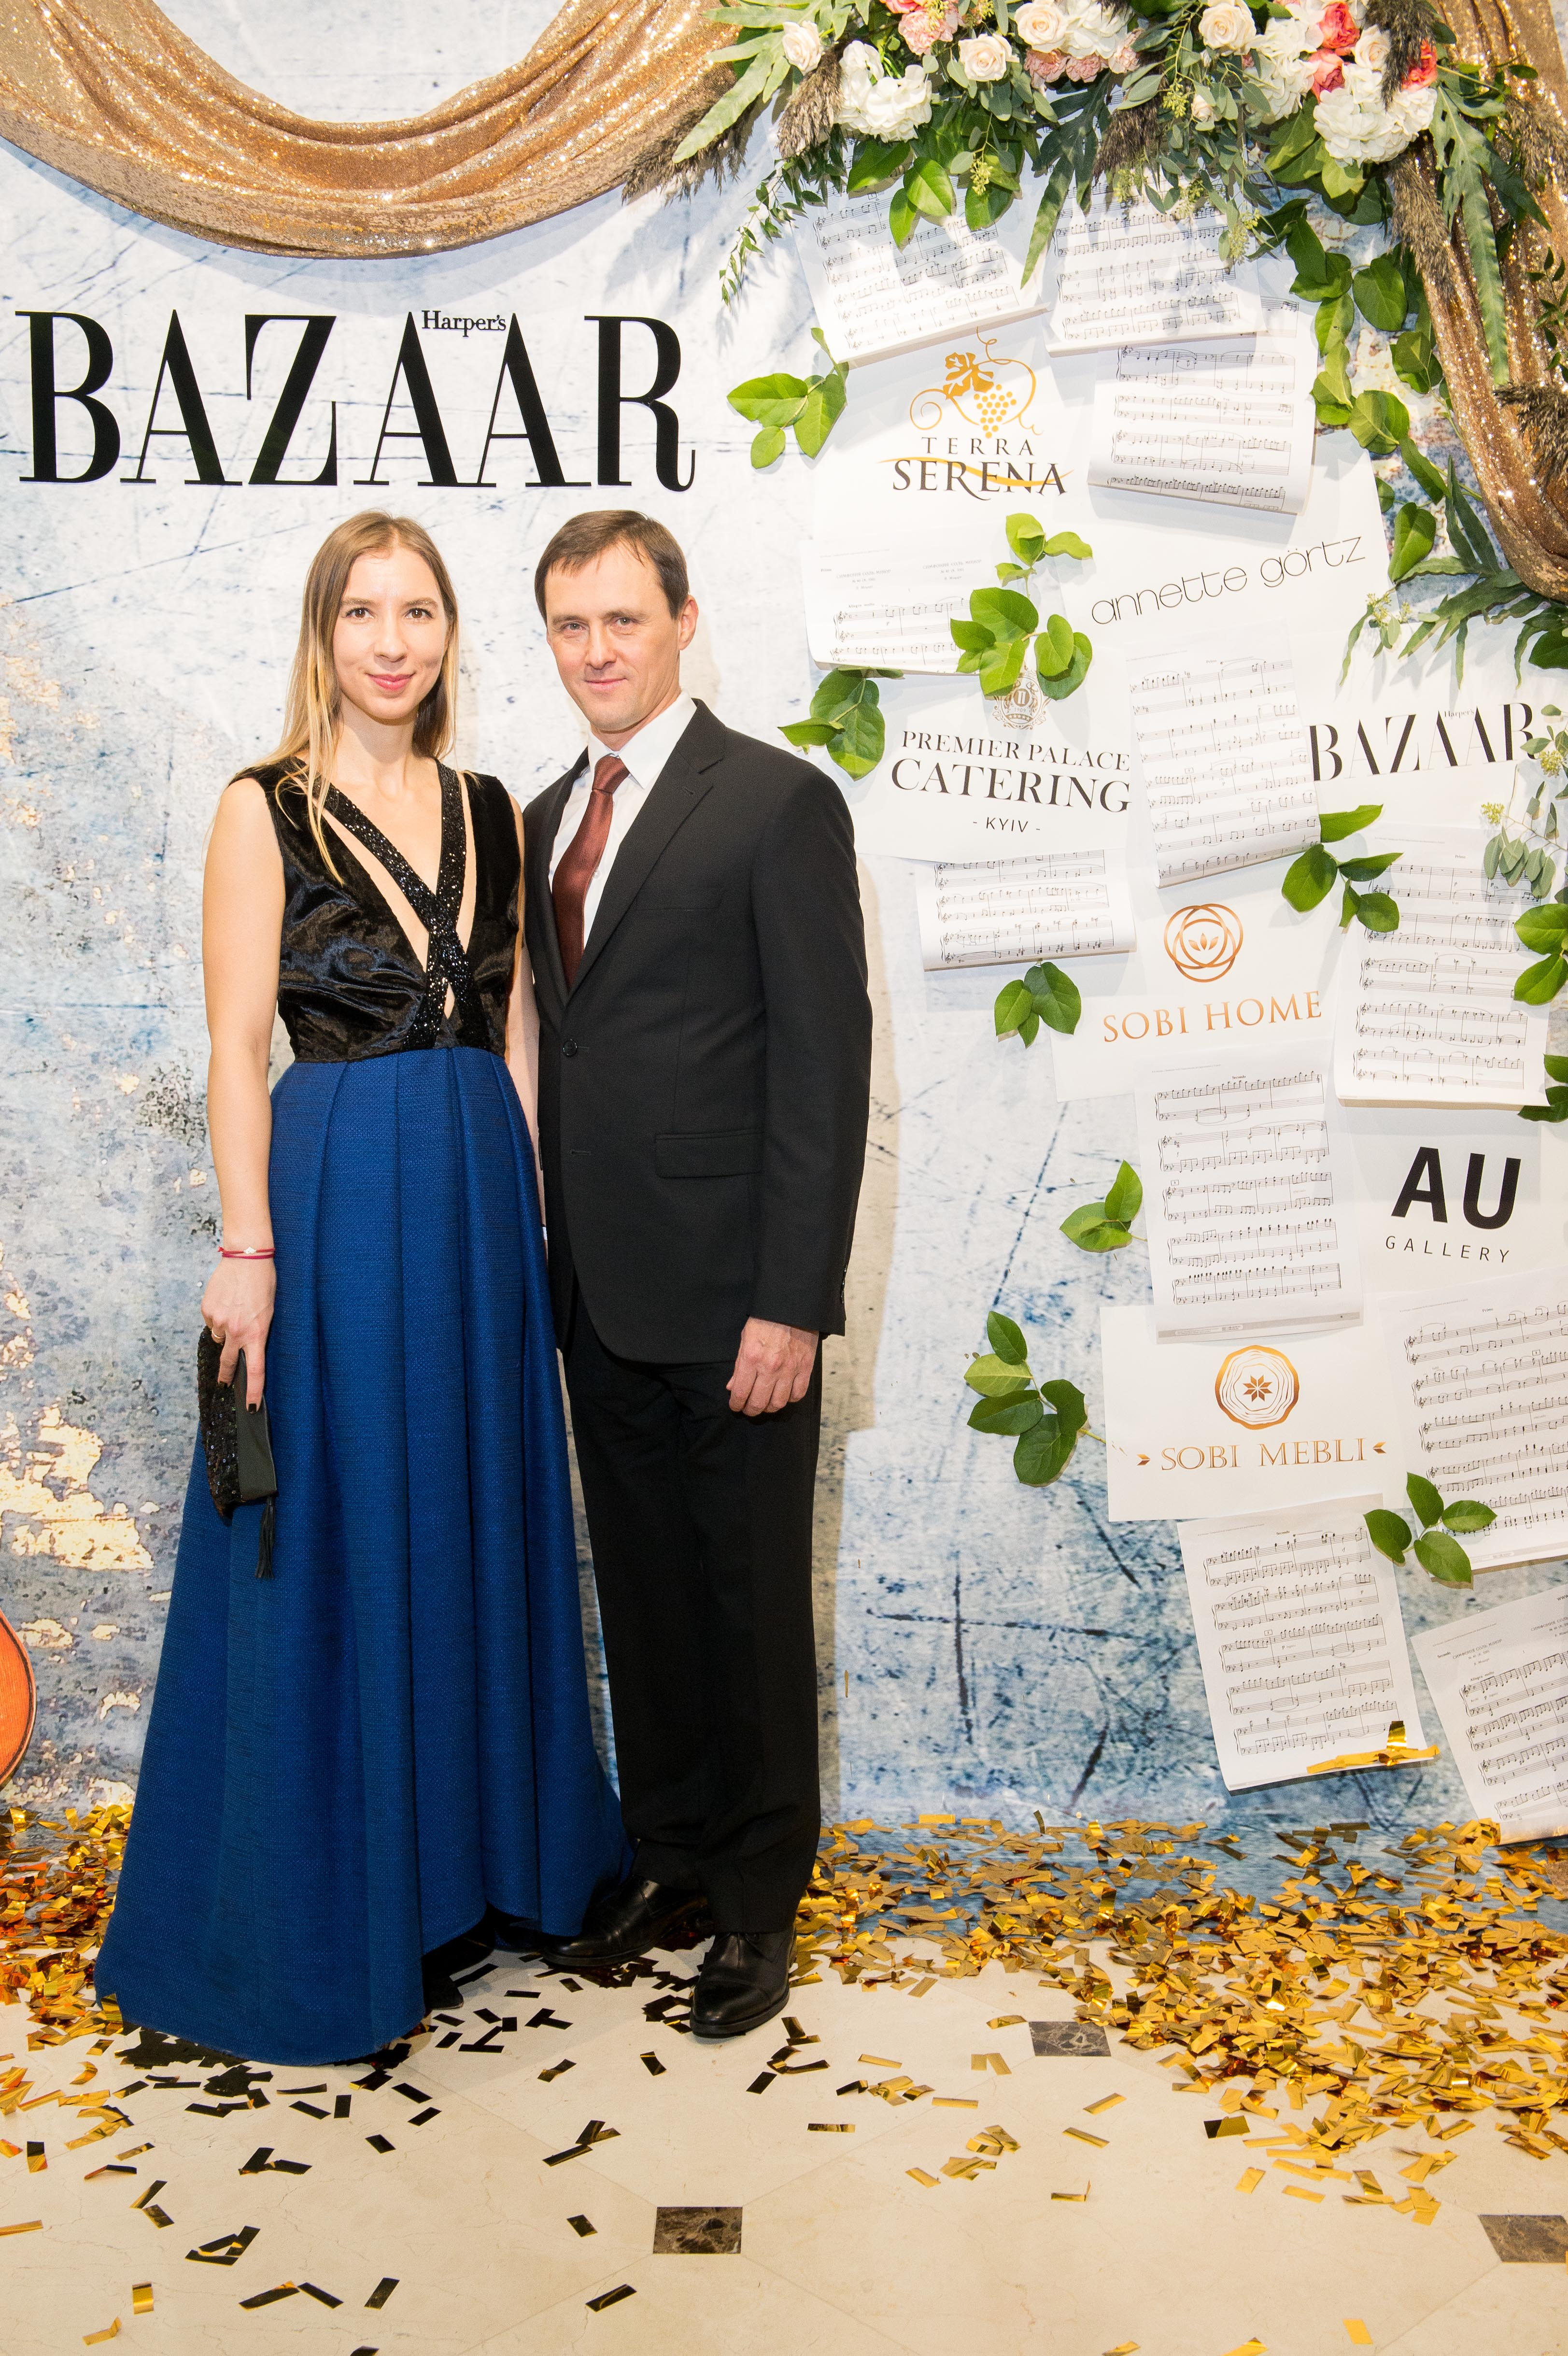 Bazaar Best Dressed 2017